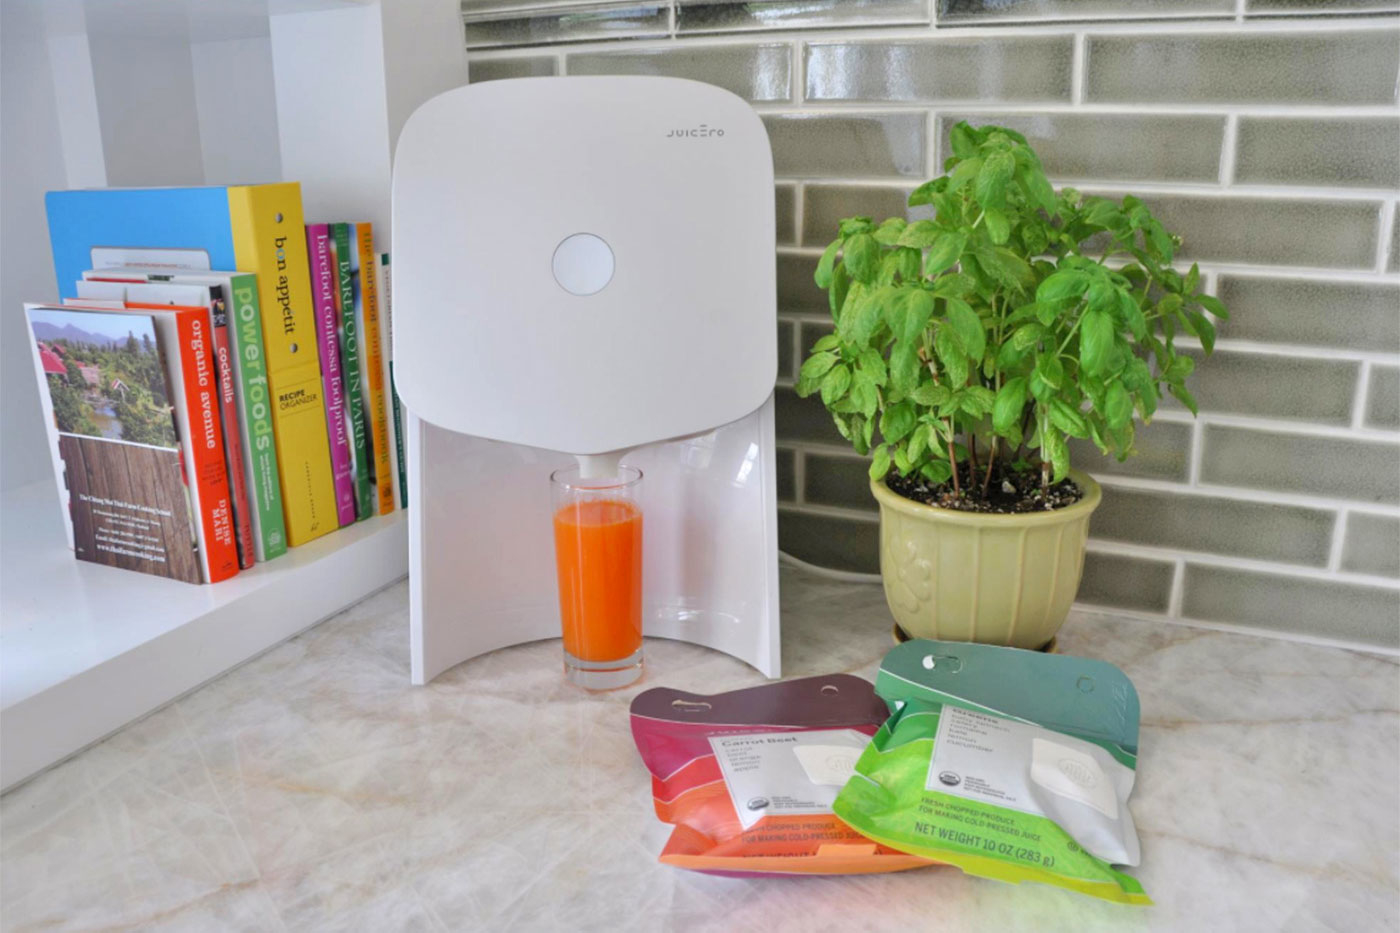 failed products juicero